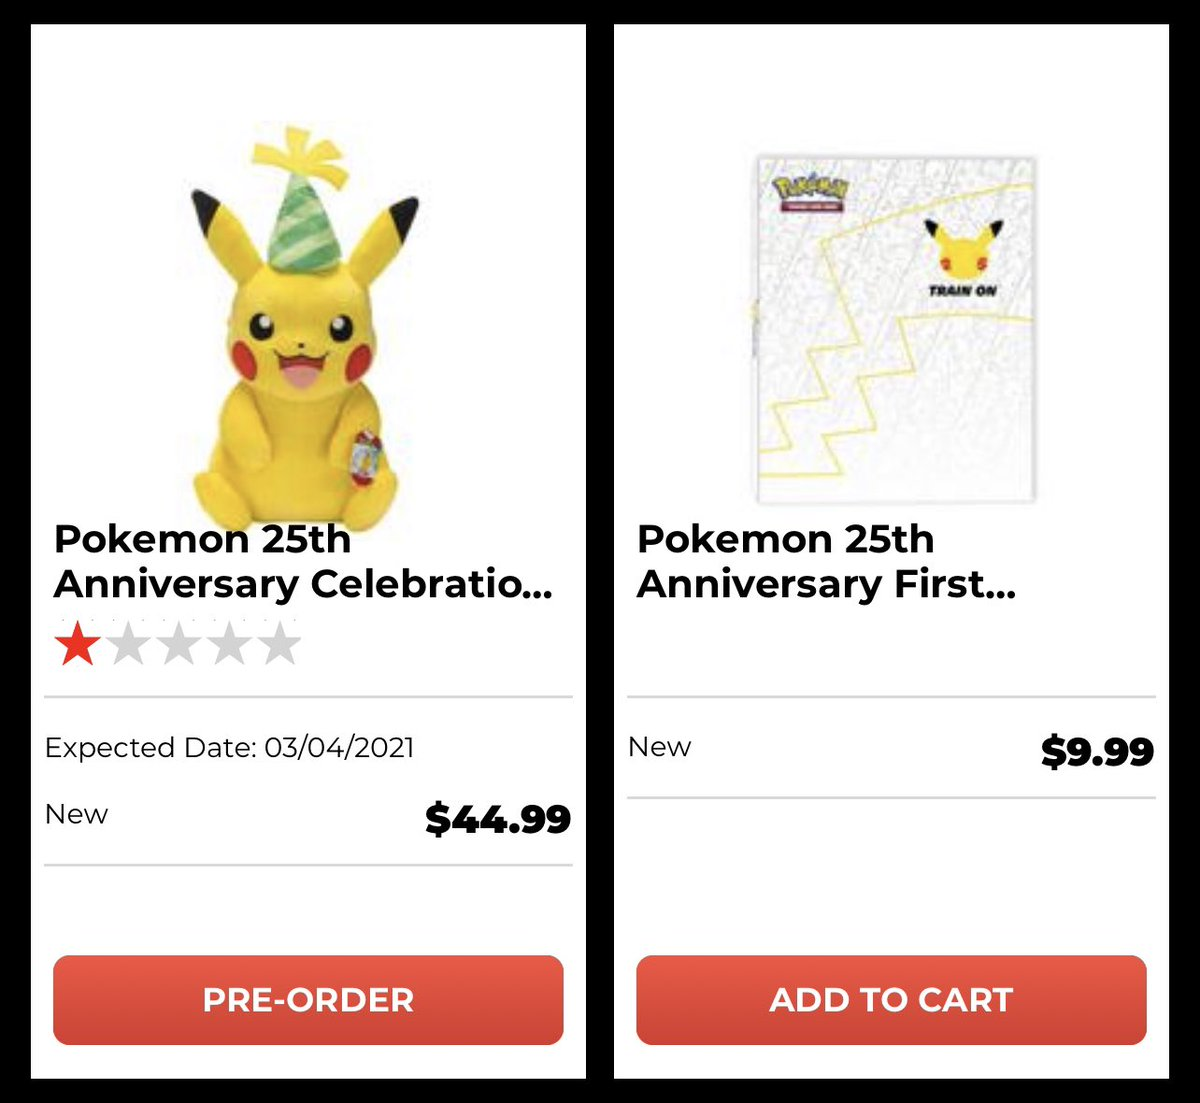 ICYMI: Pokemon 25th Anniversary merch is up at GameStop. The plush is an exclusive and the binder includes an oversized Pikachu card #Ad #Pokemon #Pikachu